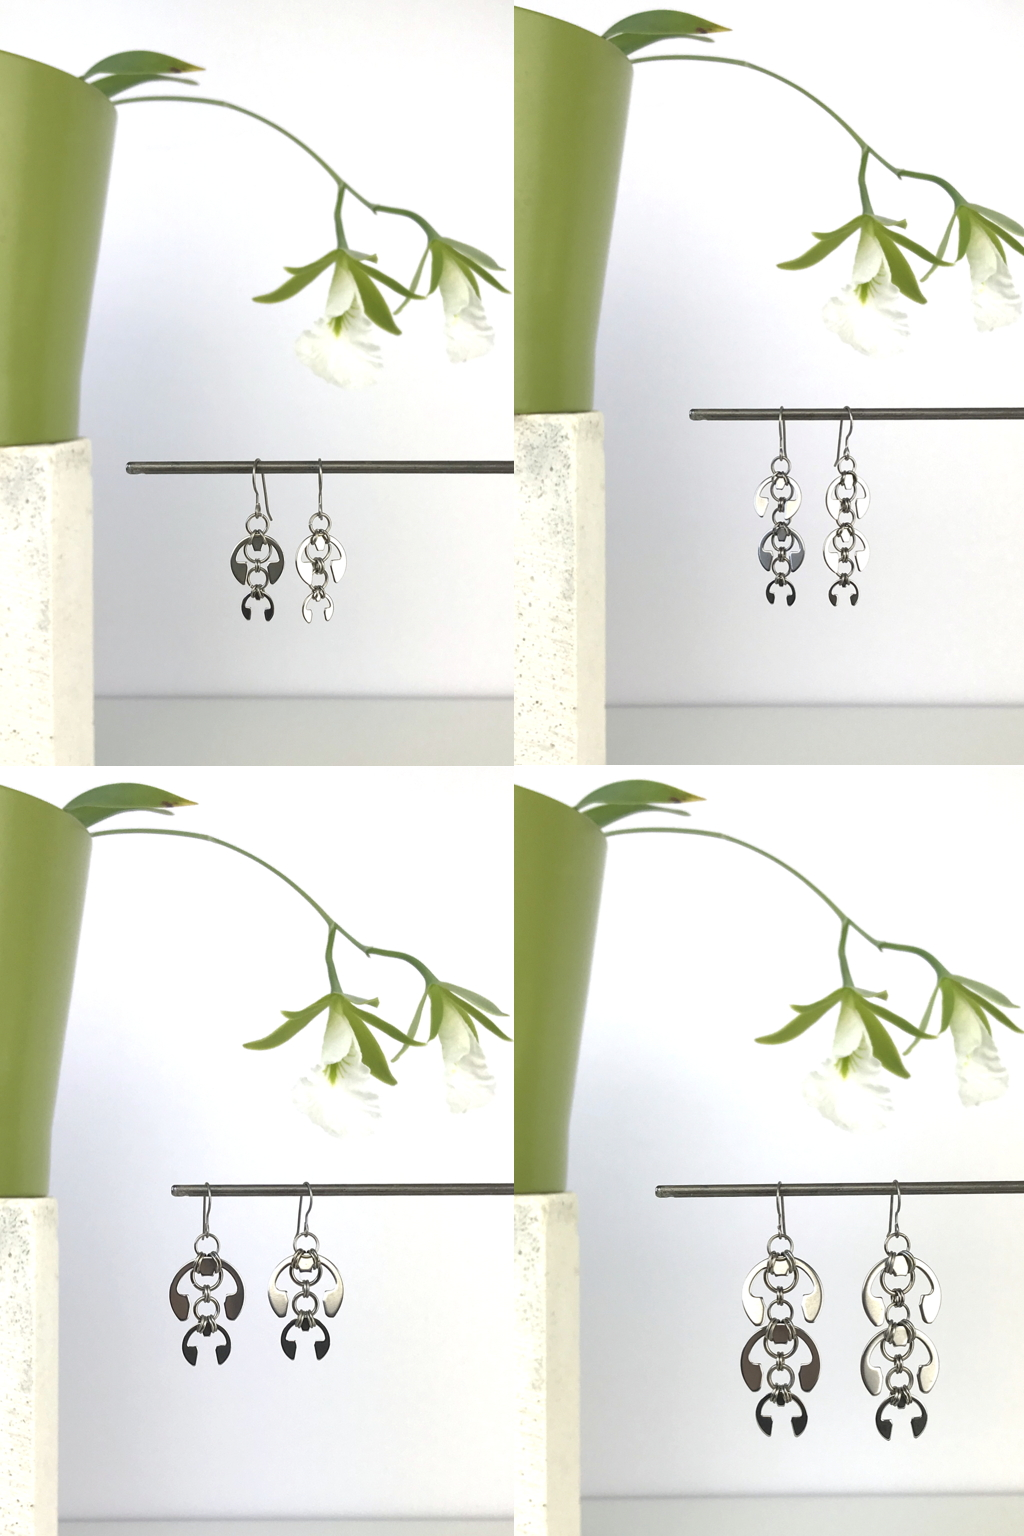 Compiled image of 4 photos featuring Wraptillion's Short and Long Fuchsia Earrings, Hops Earrings, and Laburnum Earrings with blooming orchid Encyclia mariae in a green cachepot.